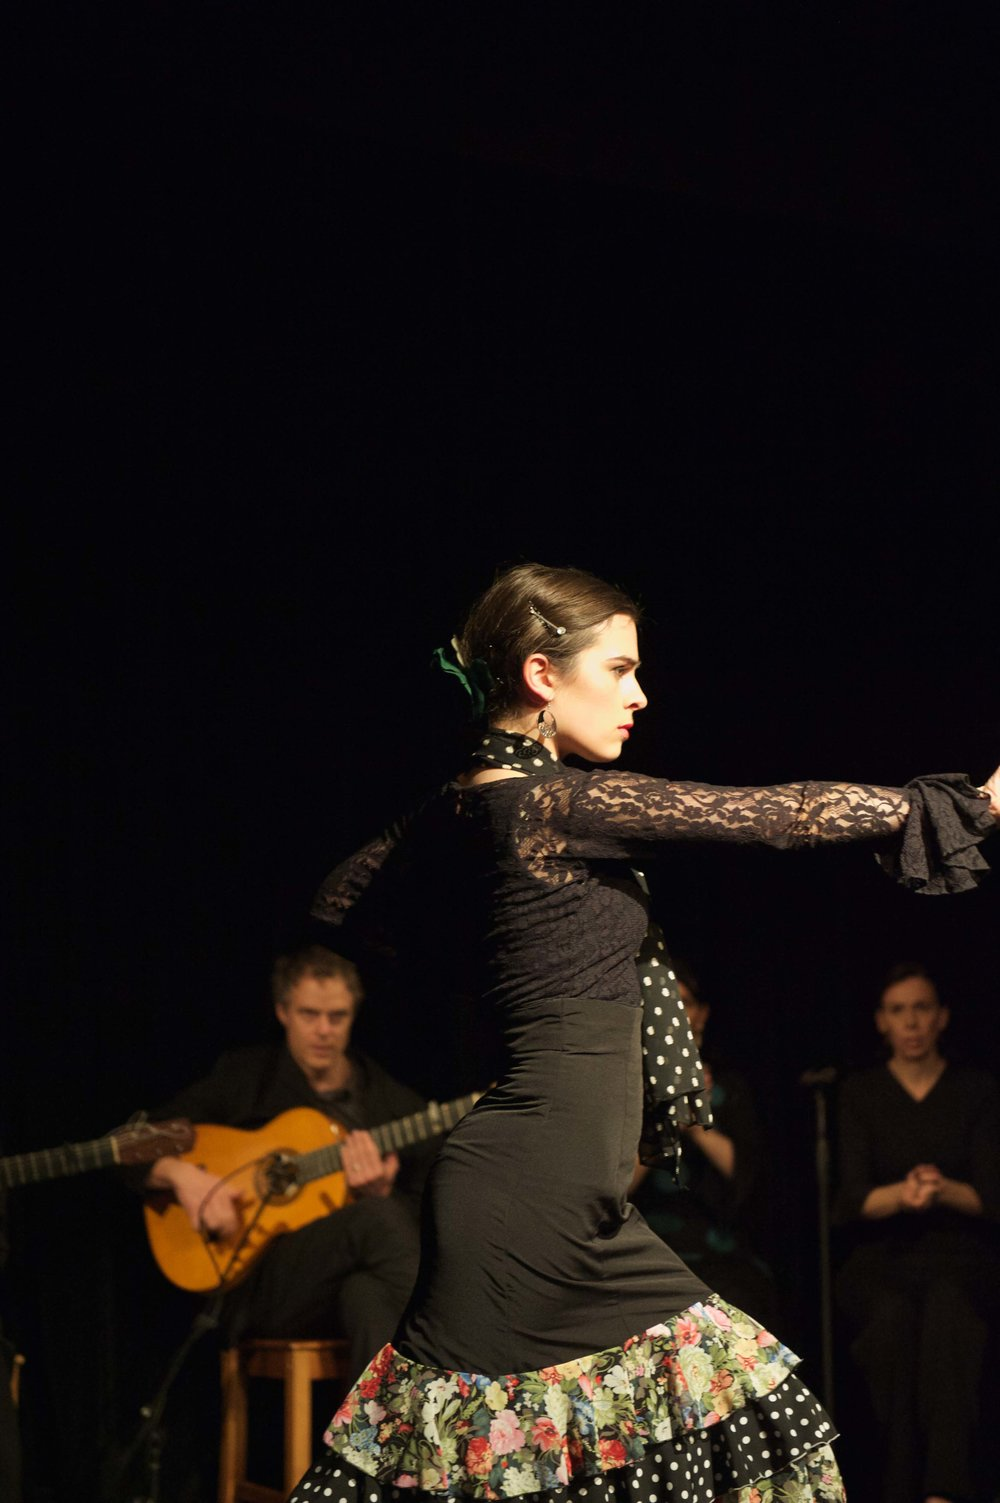 2016-07-31studio flamenco August 2016_150 of 207_1.jpg